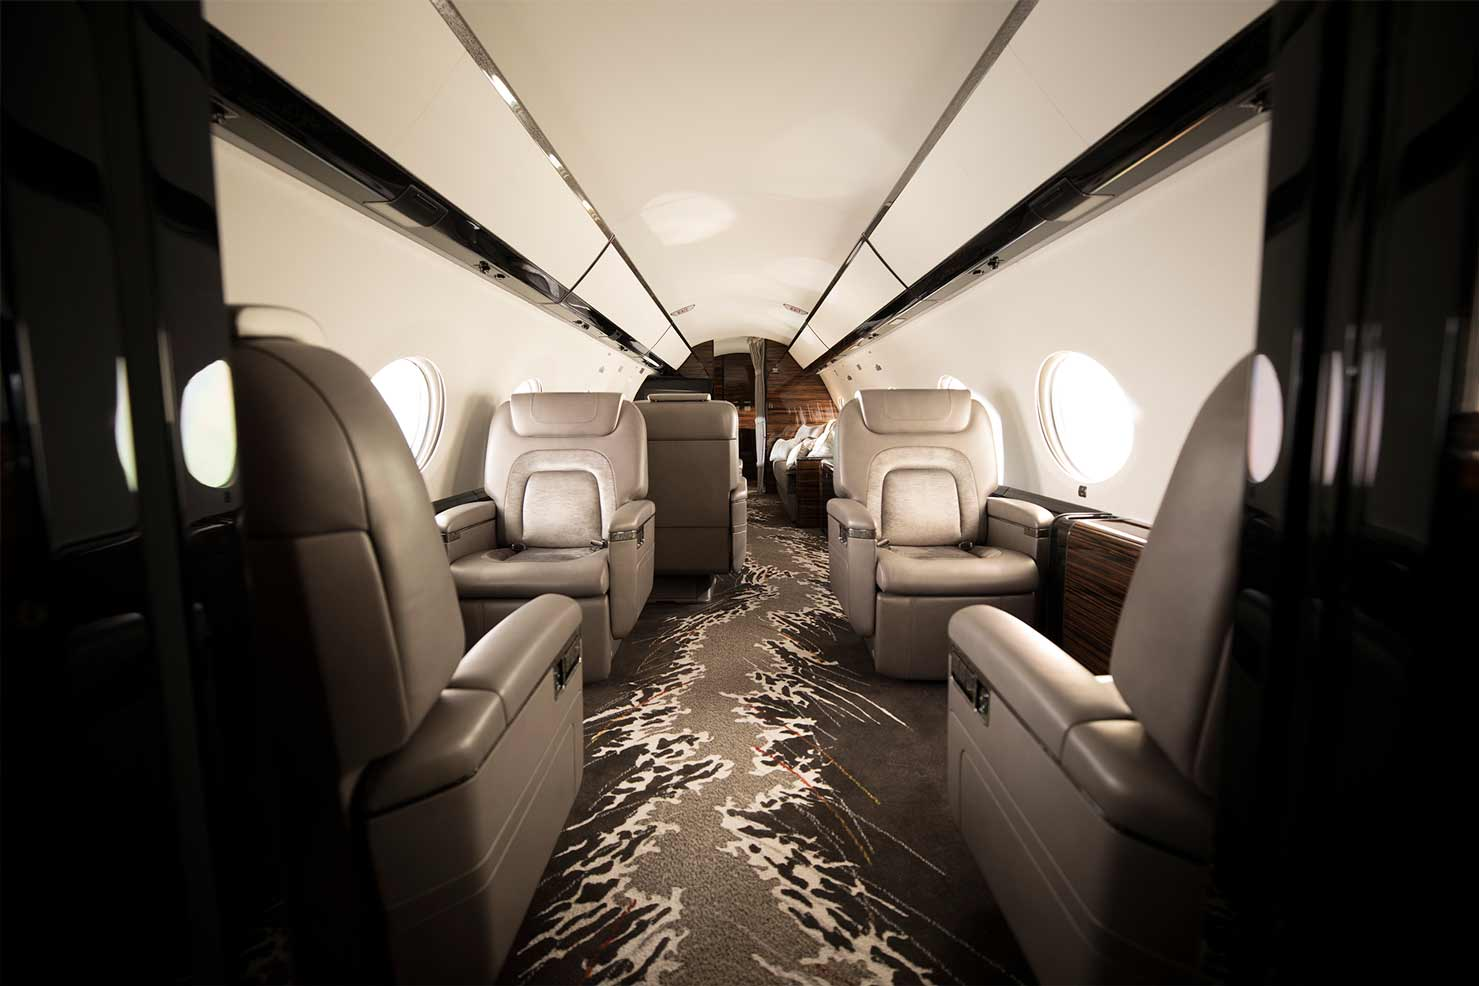 Interior private jet